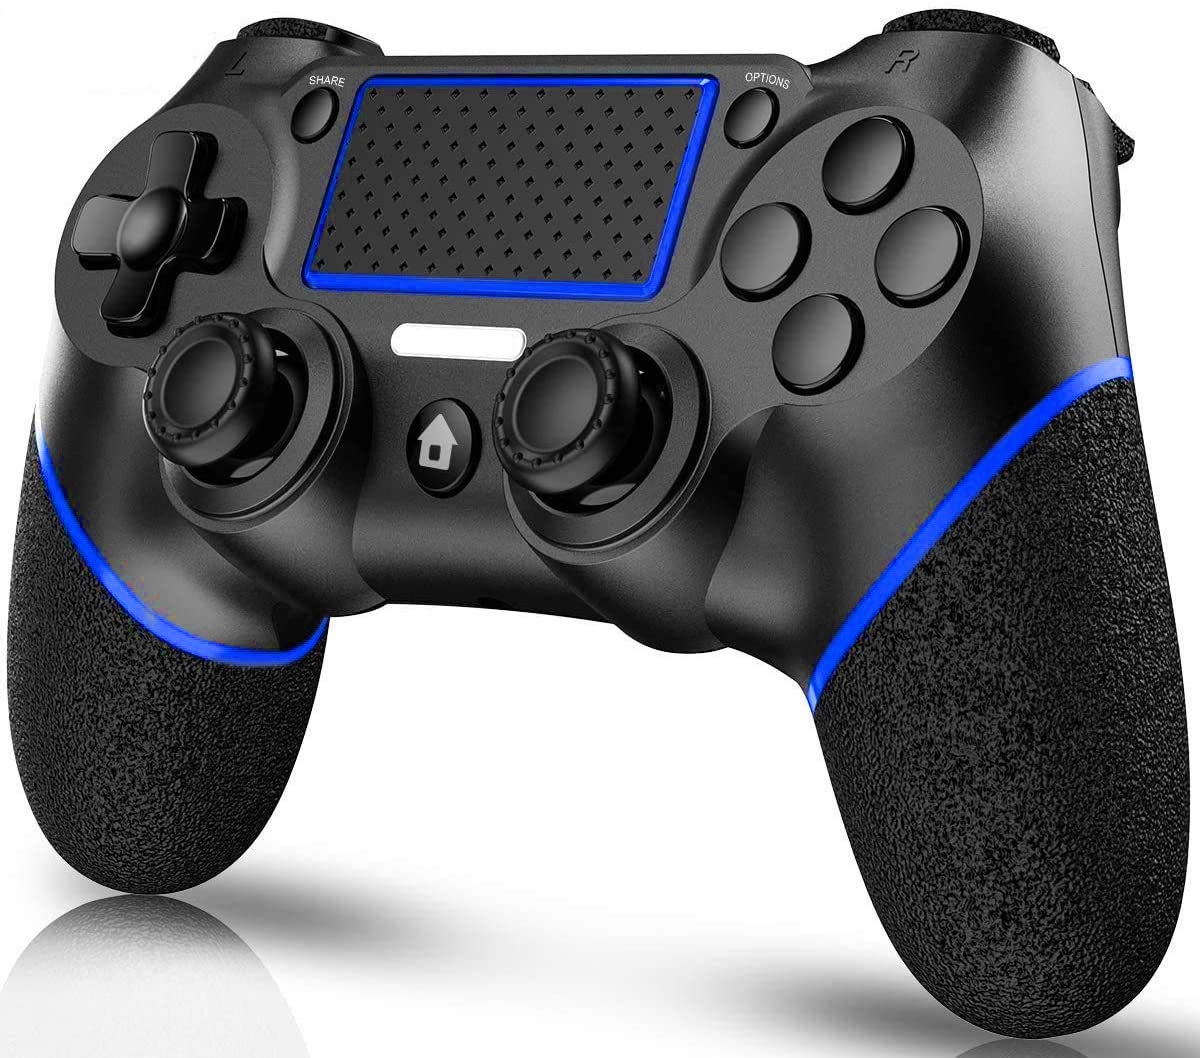 TUTUO Wireless Game Controller Compatible with PS4/Slim/Pro/DualShock 4, Gamepad Remote Joystick with Gyro/HD Dual Vibration/Touch Panel/LED Indicator/USB Cable(Blue)